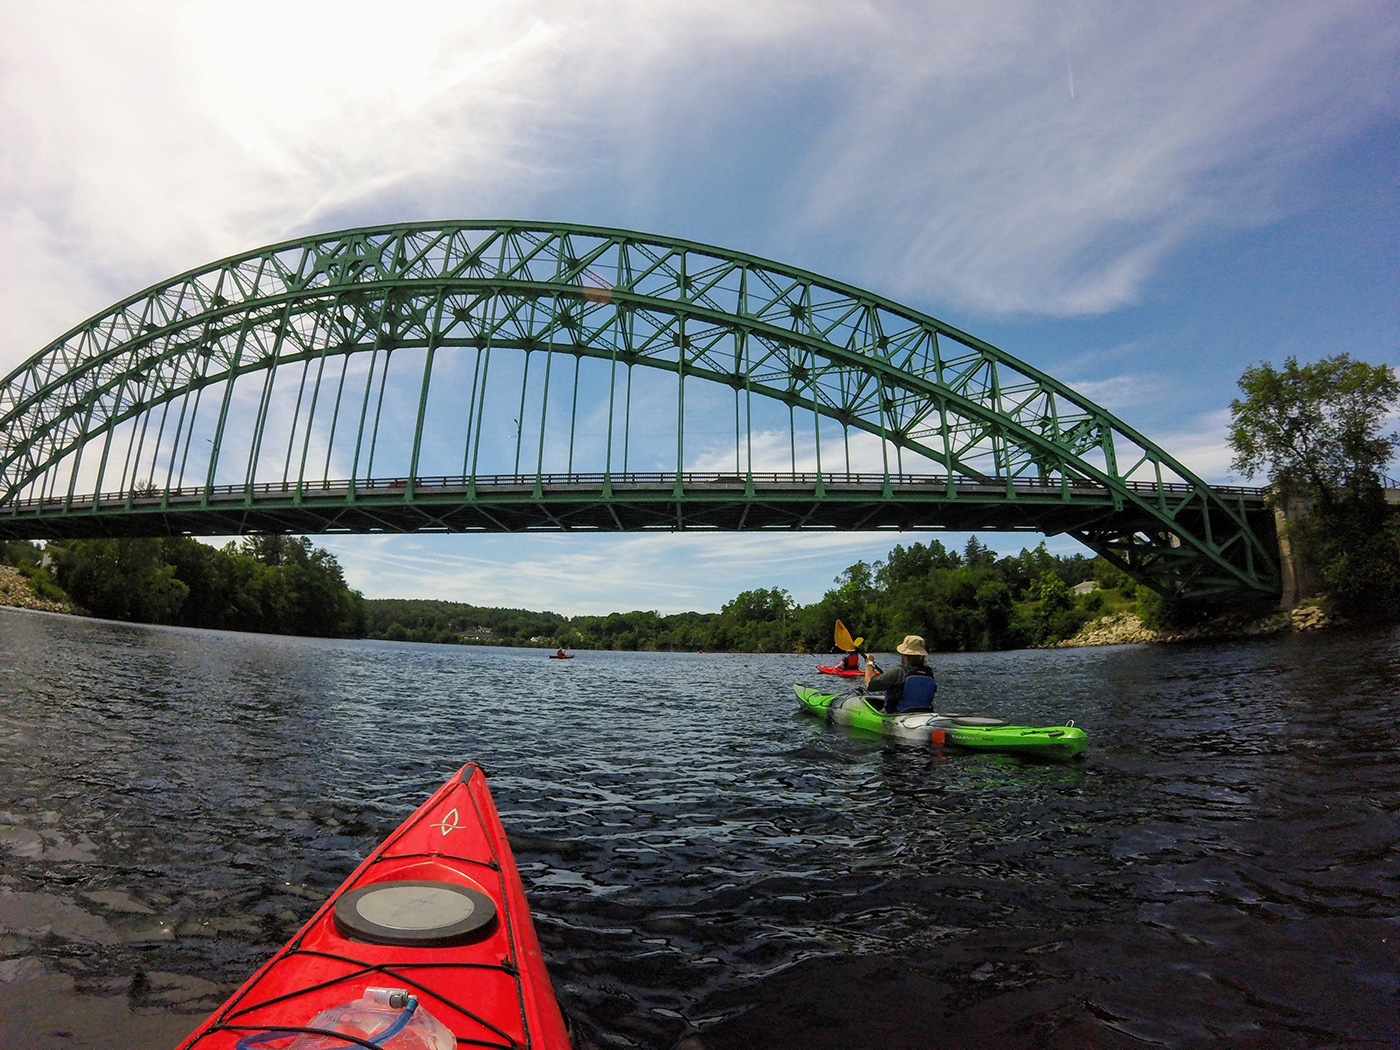 Kayakers approaching under a large green arch bridge.